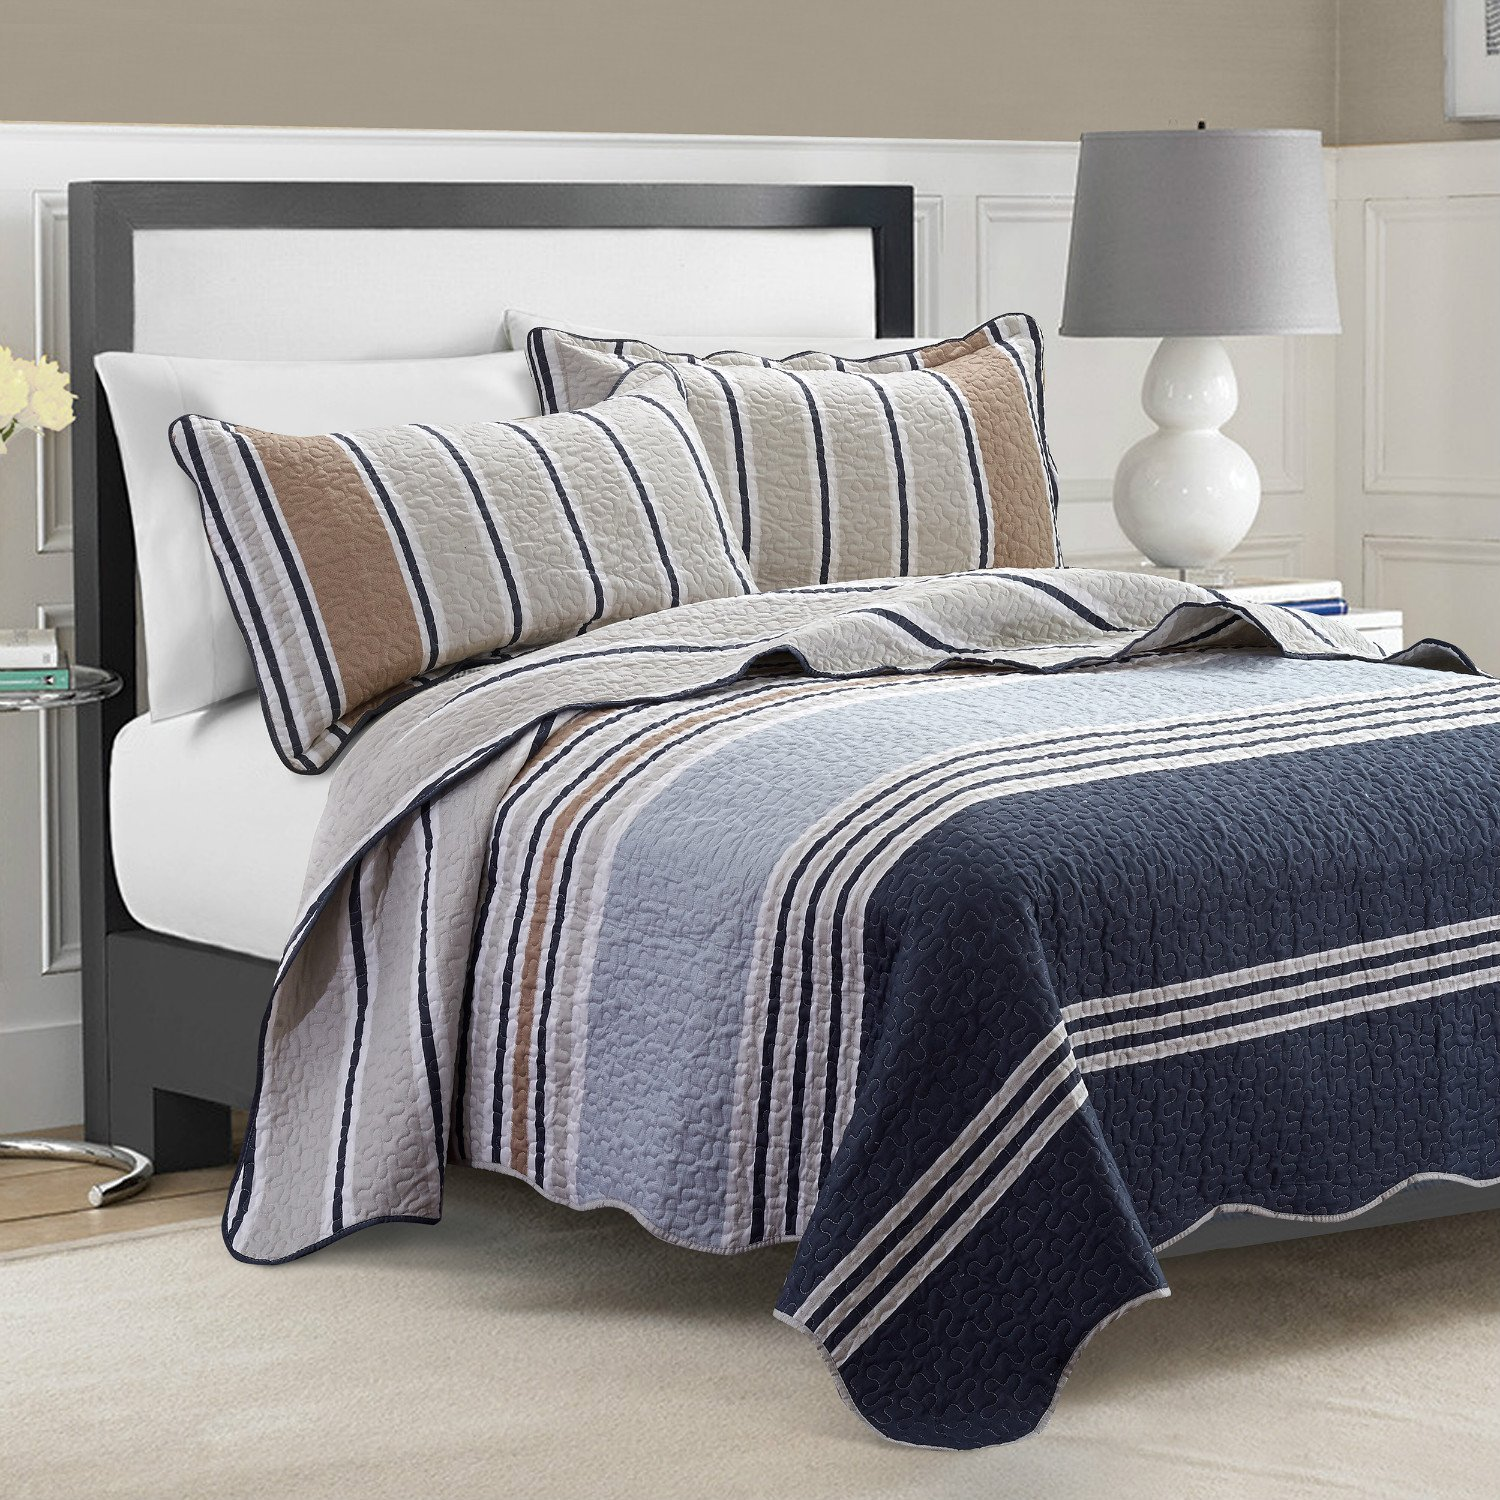 Navy Bedding and Navy Quilts – Ease Bedding with Style : beige quilt - Adamdwight.com